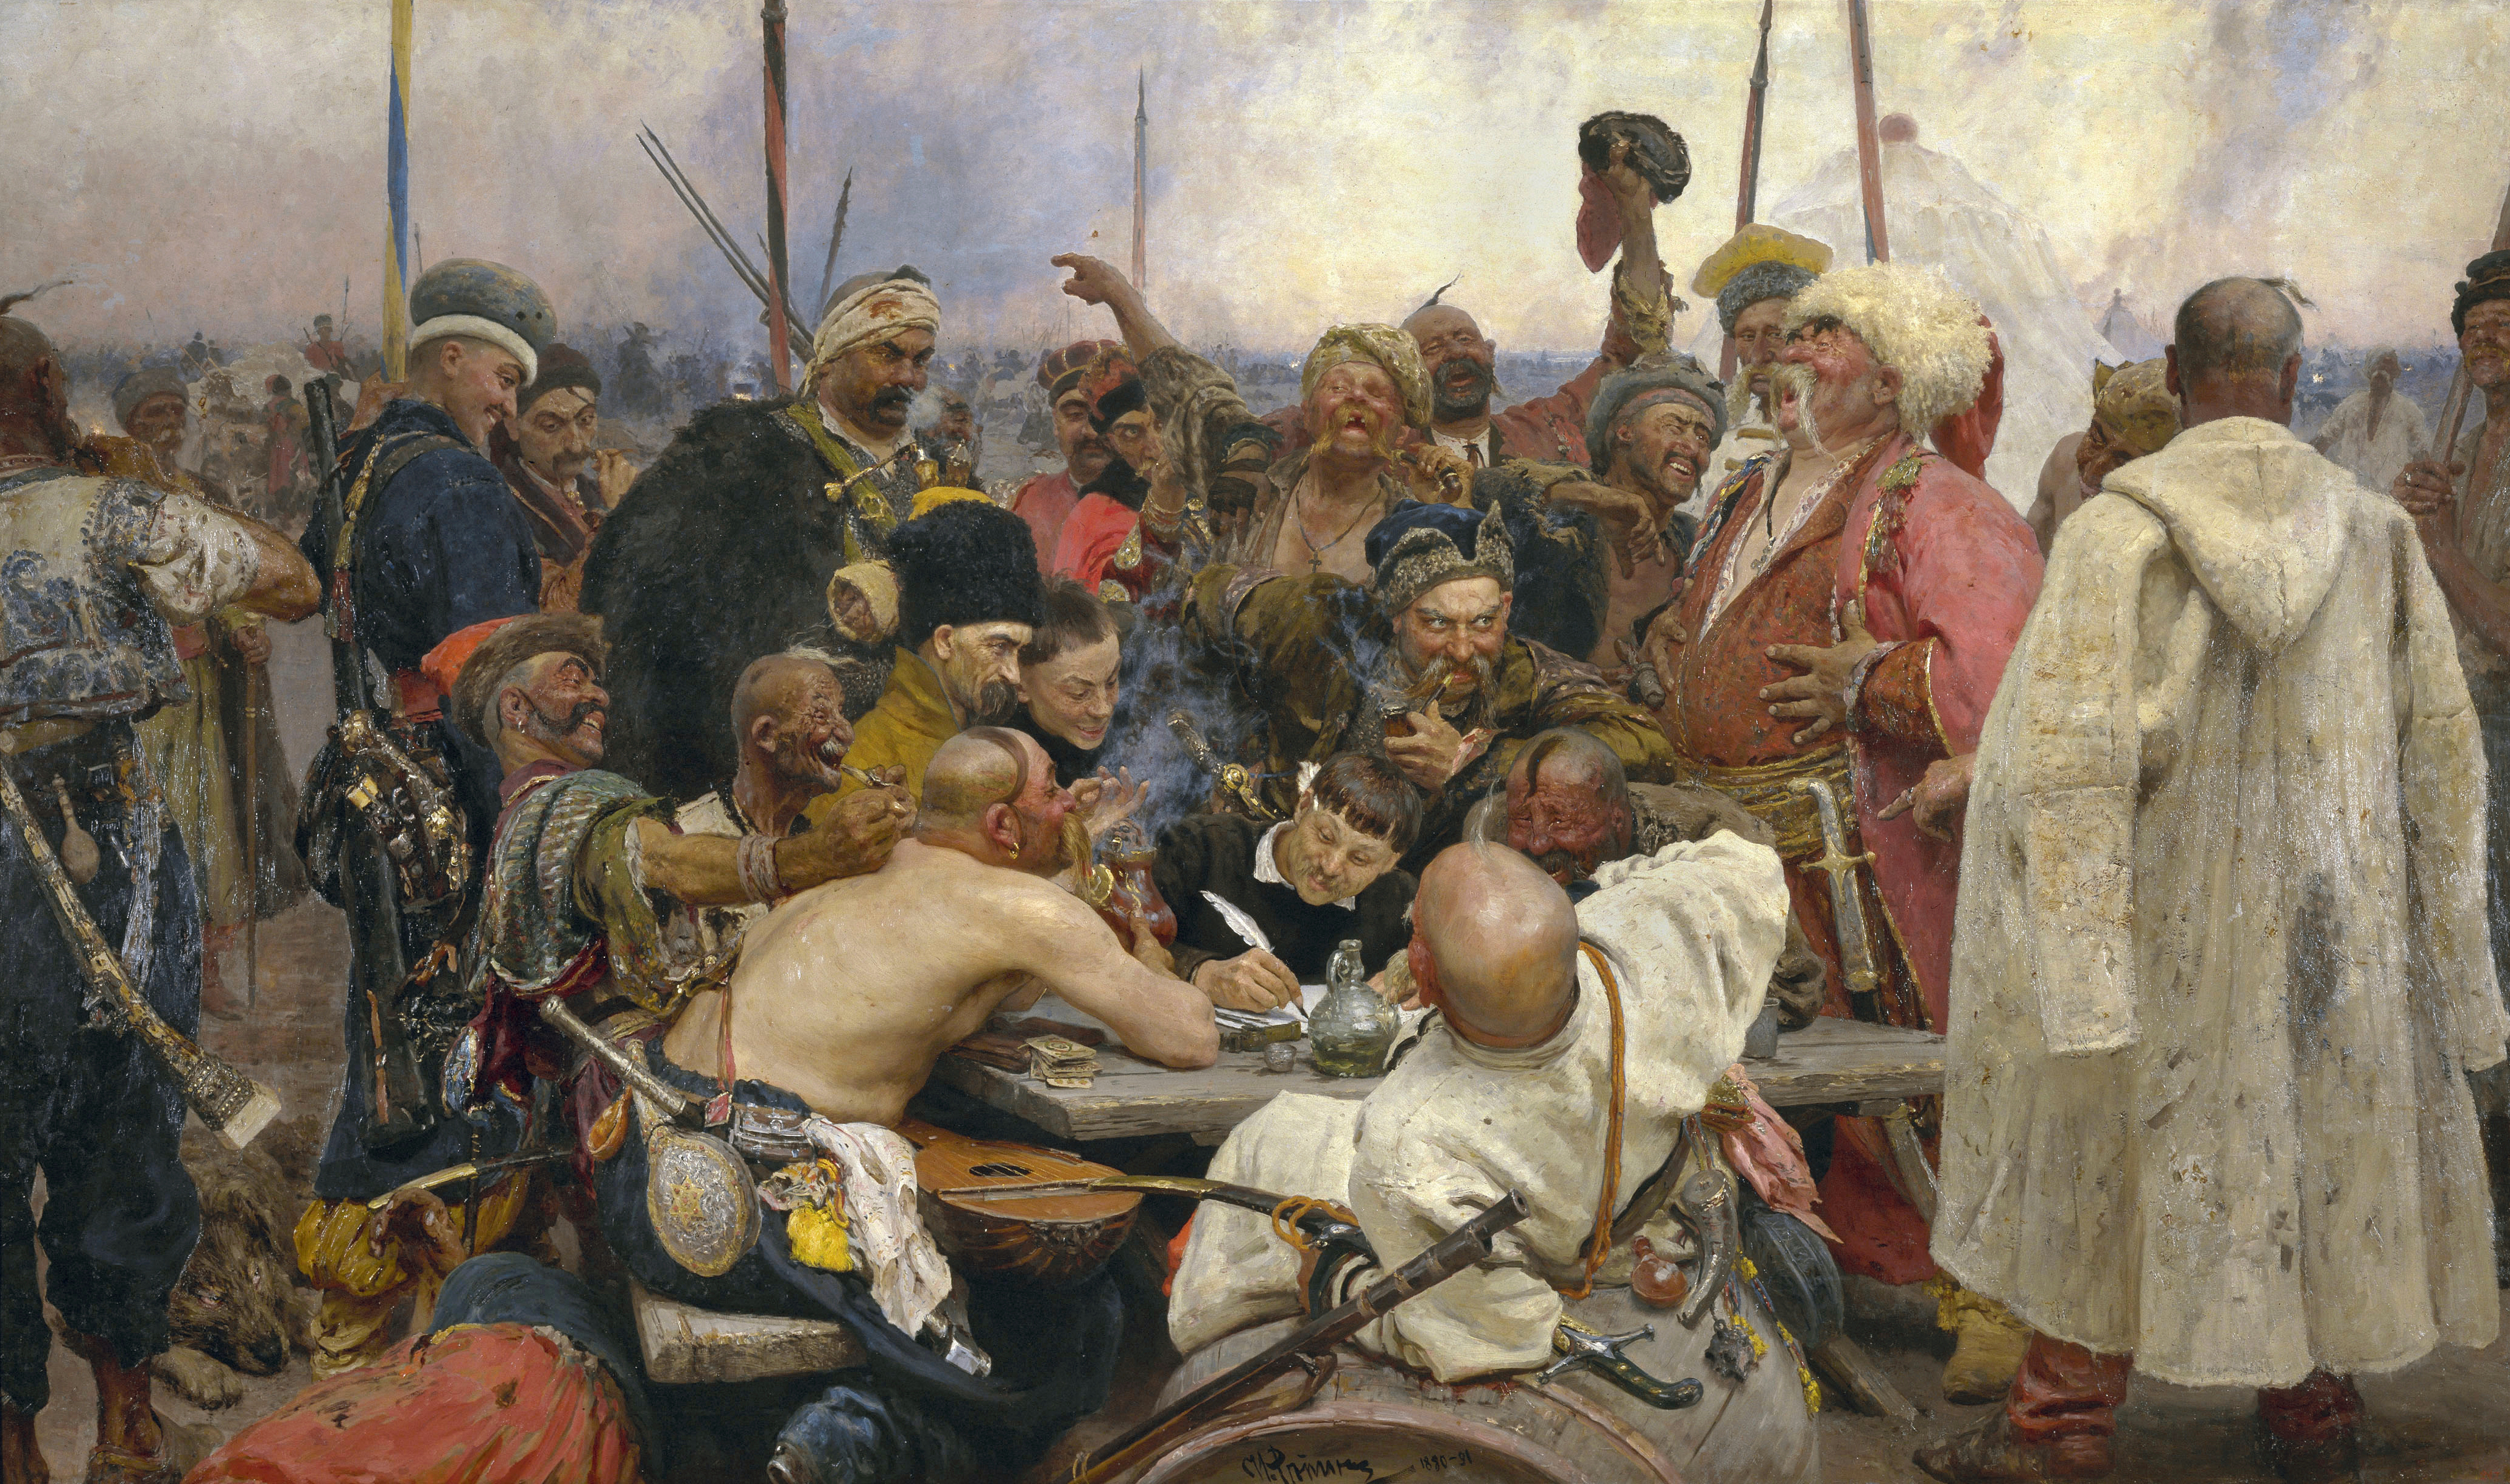 Ilja_Jefimowitsch_Repin_-_Reply_of_the_Zaporozhian_Cossacks_-_Yorck.jpg